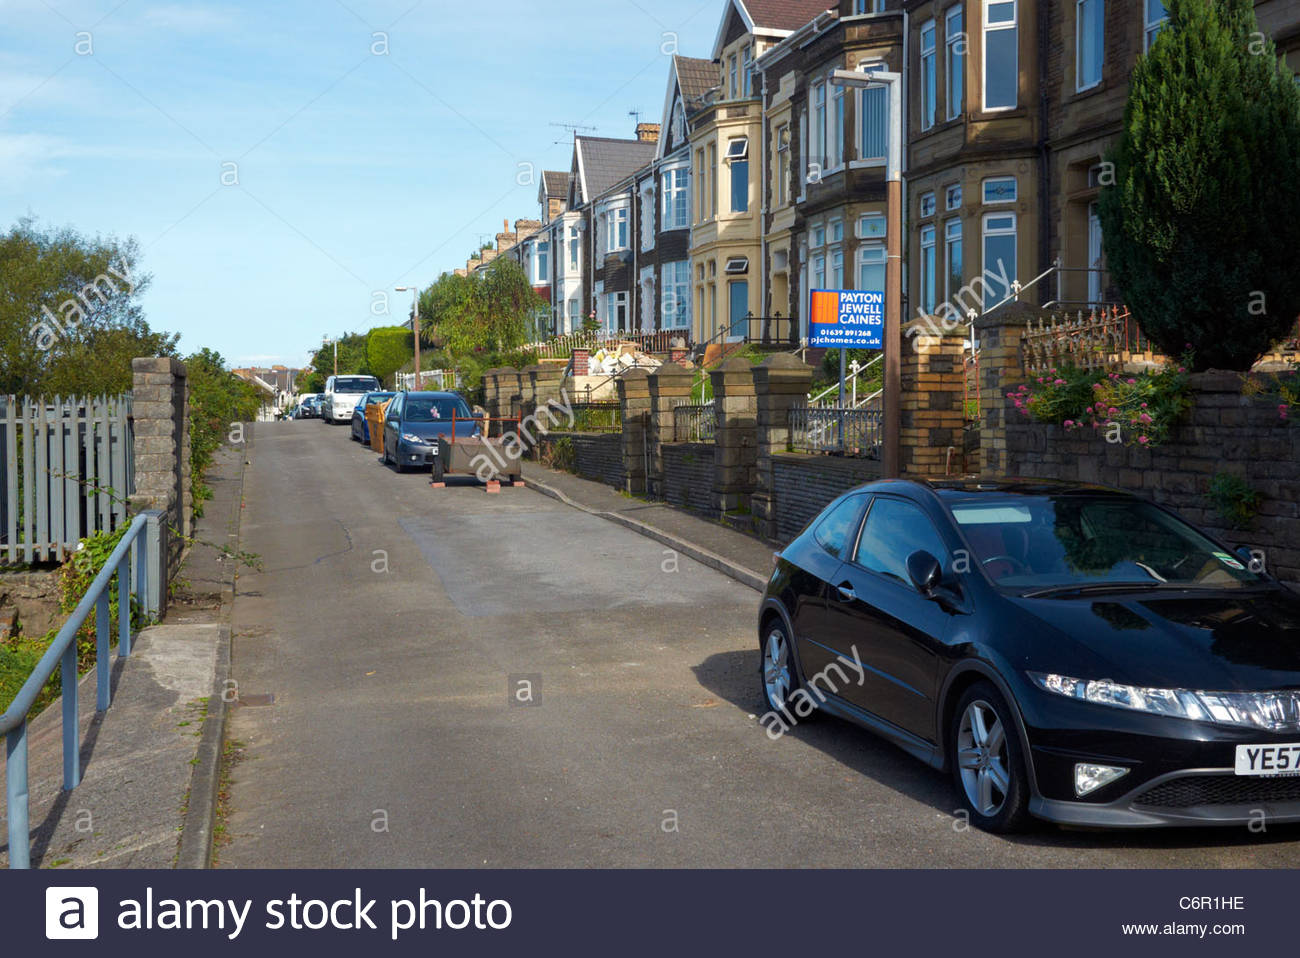 row of victorian terraced houses in welsh town of port talbot wales - Stock Image